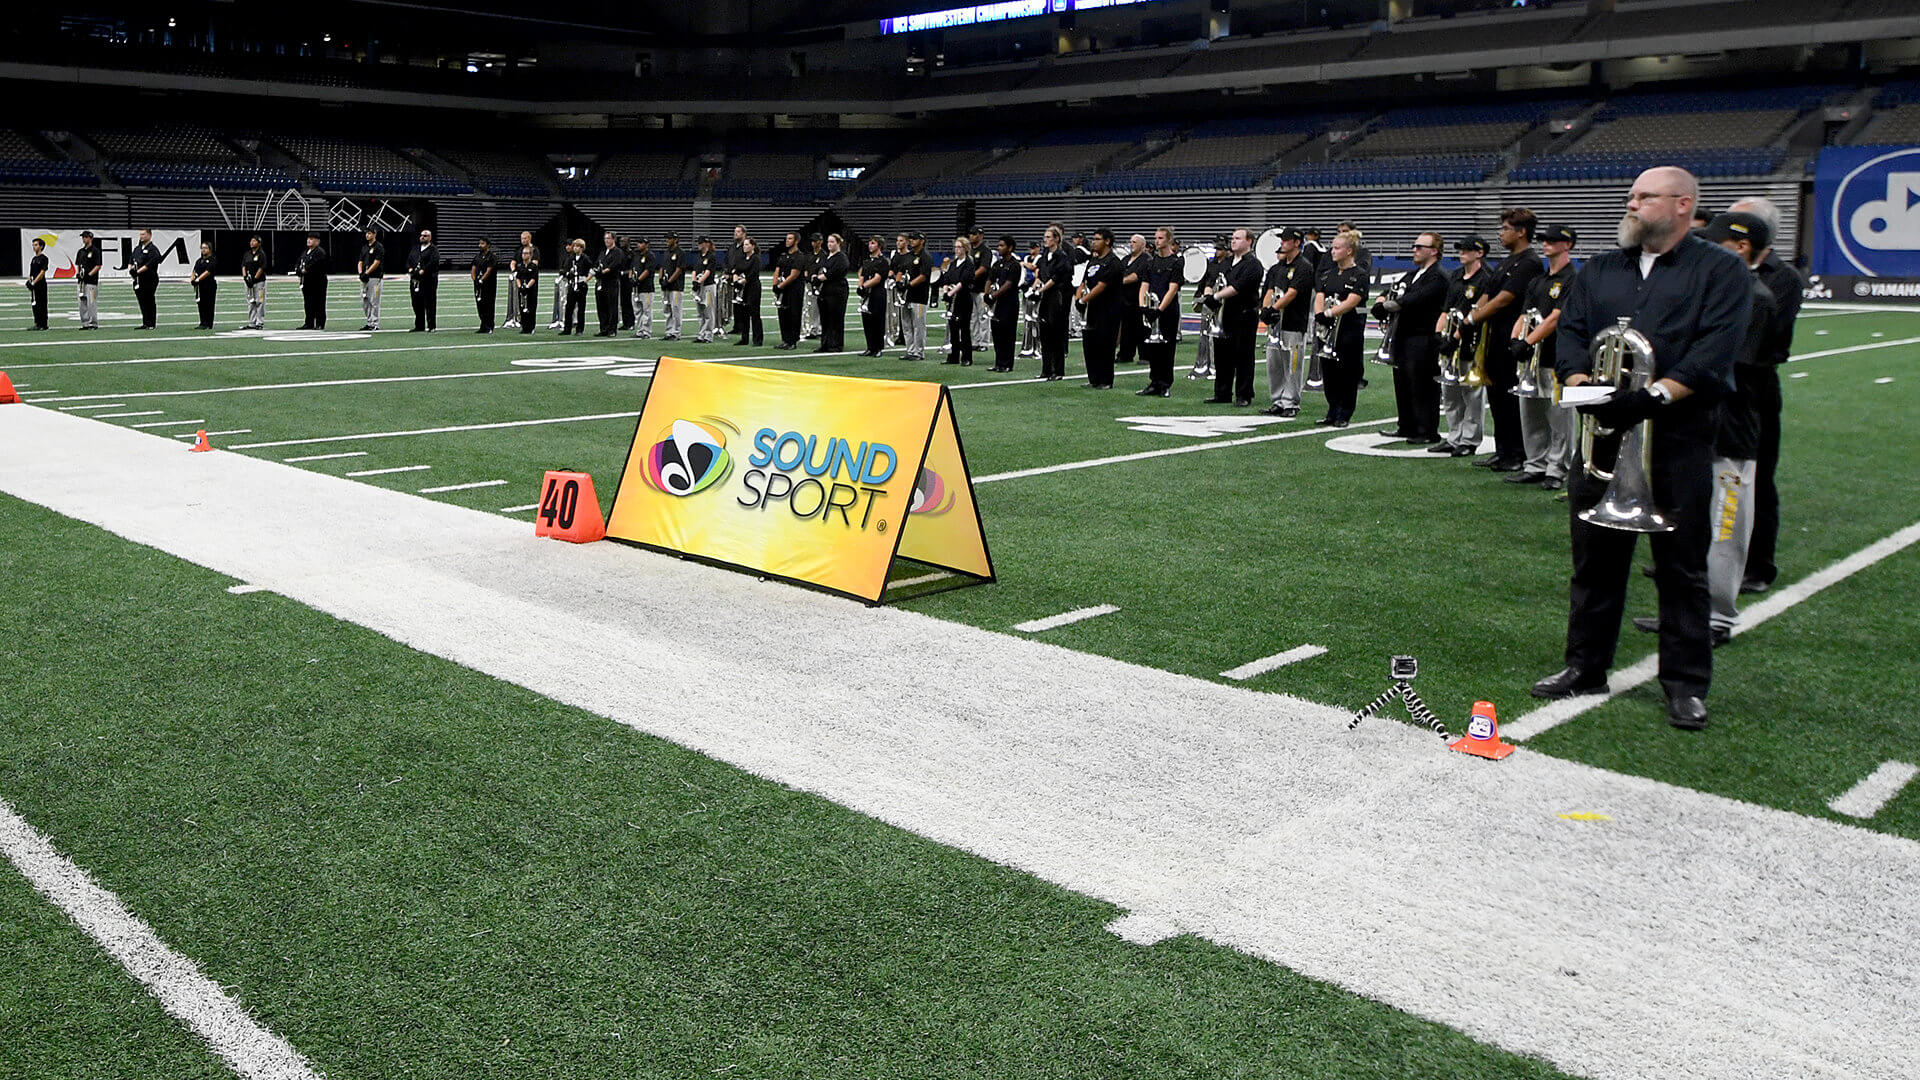 Southwestern SoundSport teams bring the heat in San Antonio